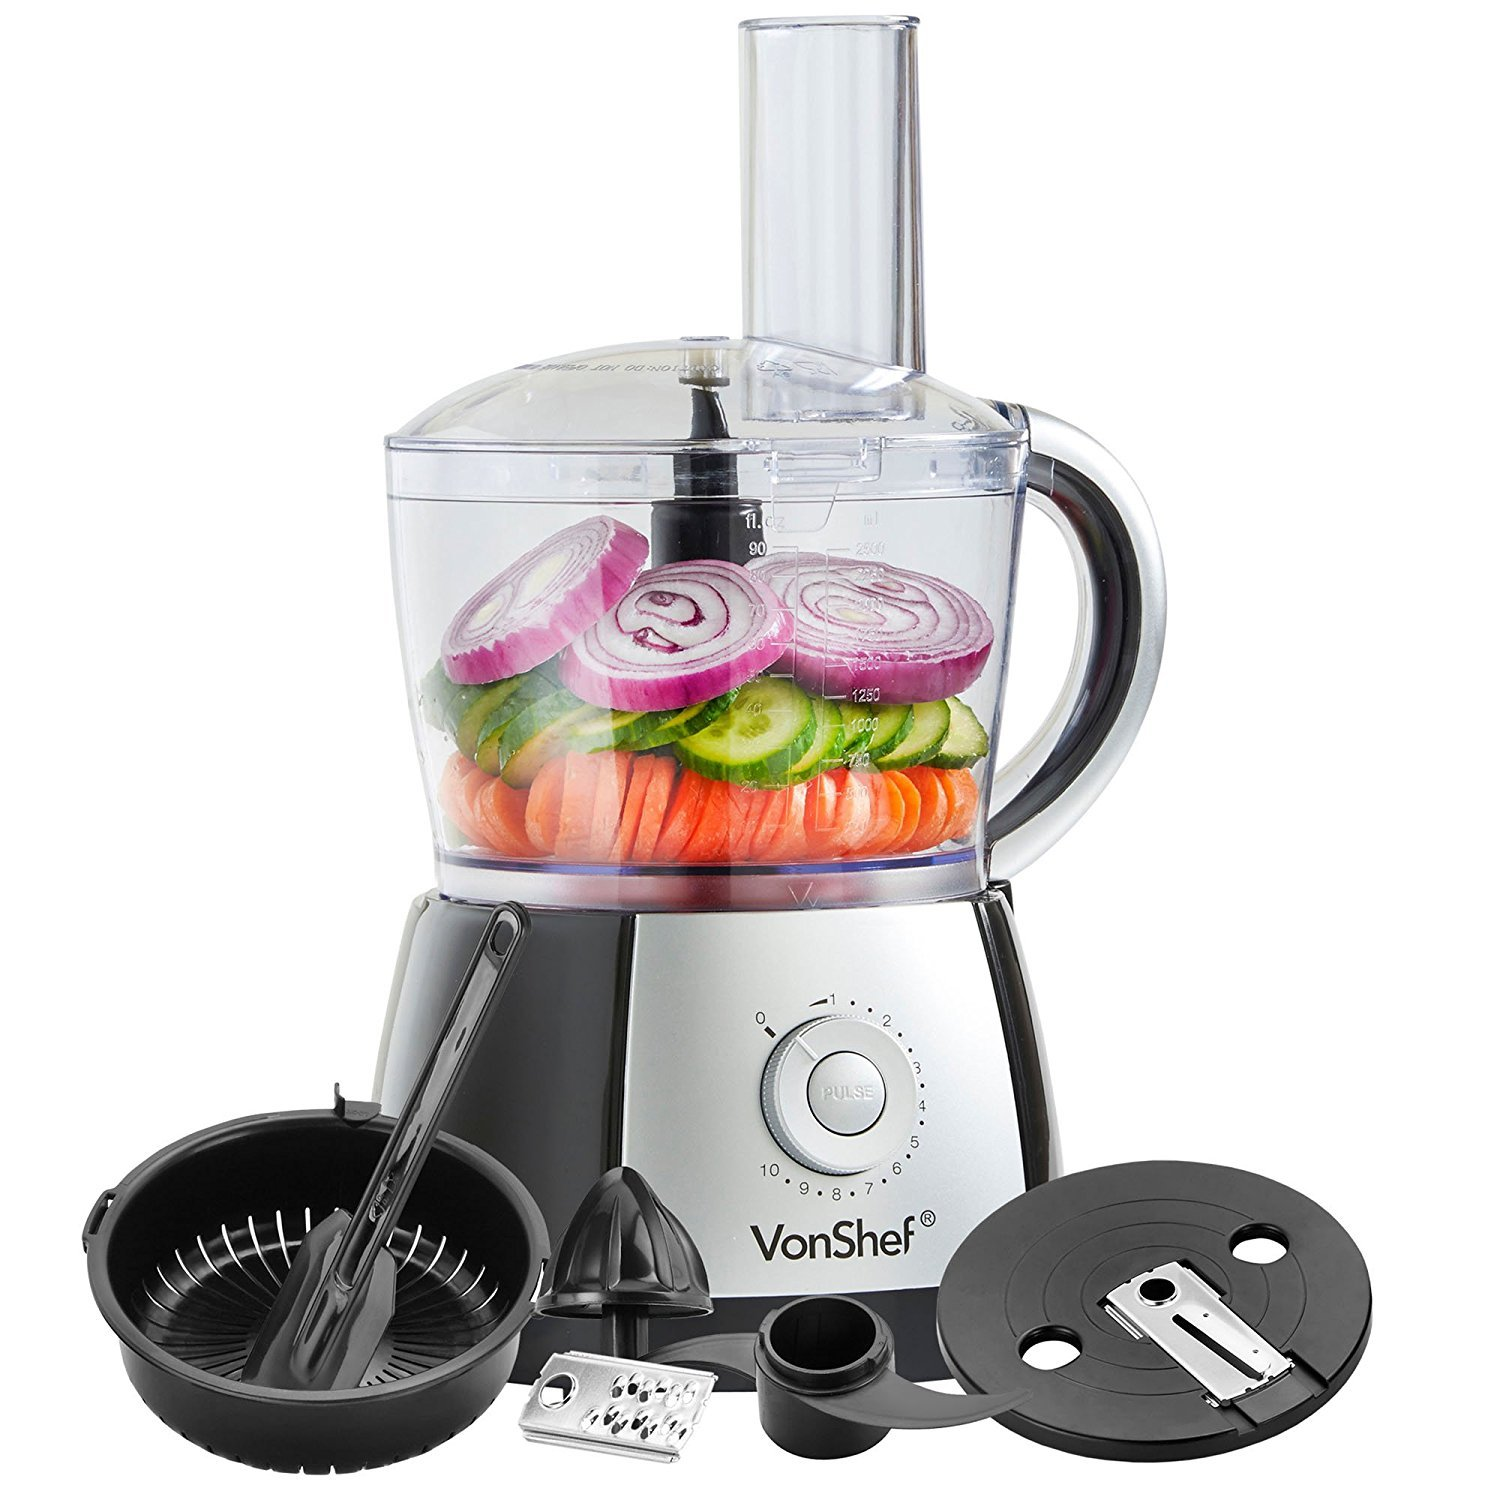 Vonshef 220 Volts Food Processor With Juicer Attachment